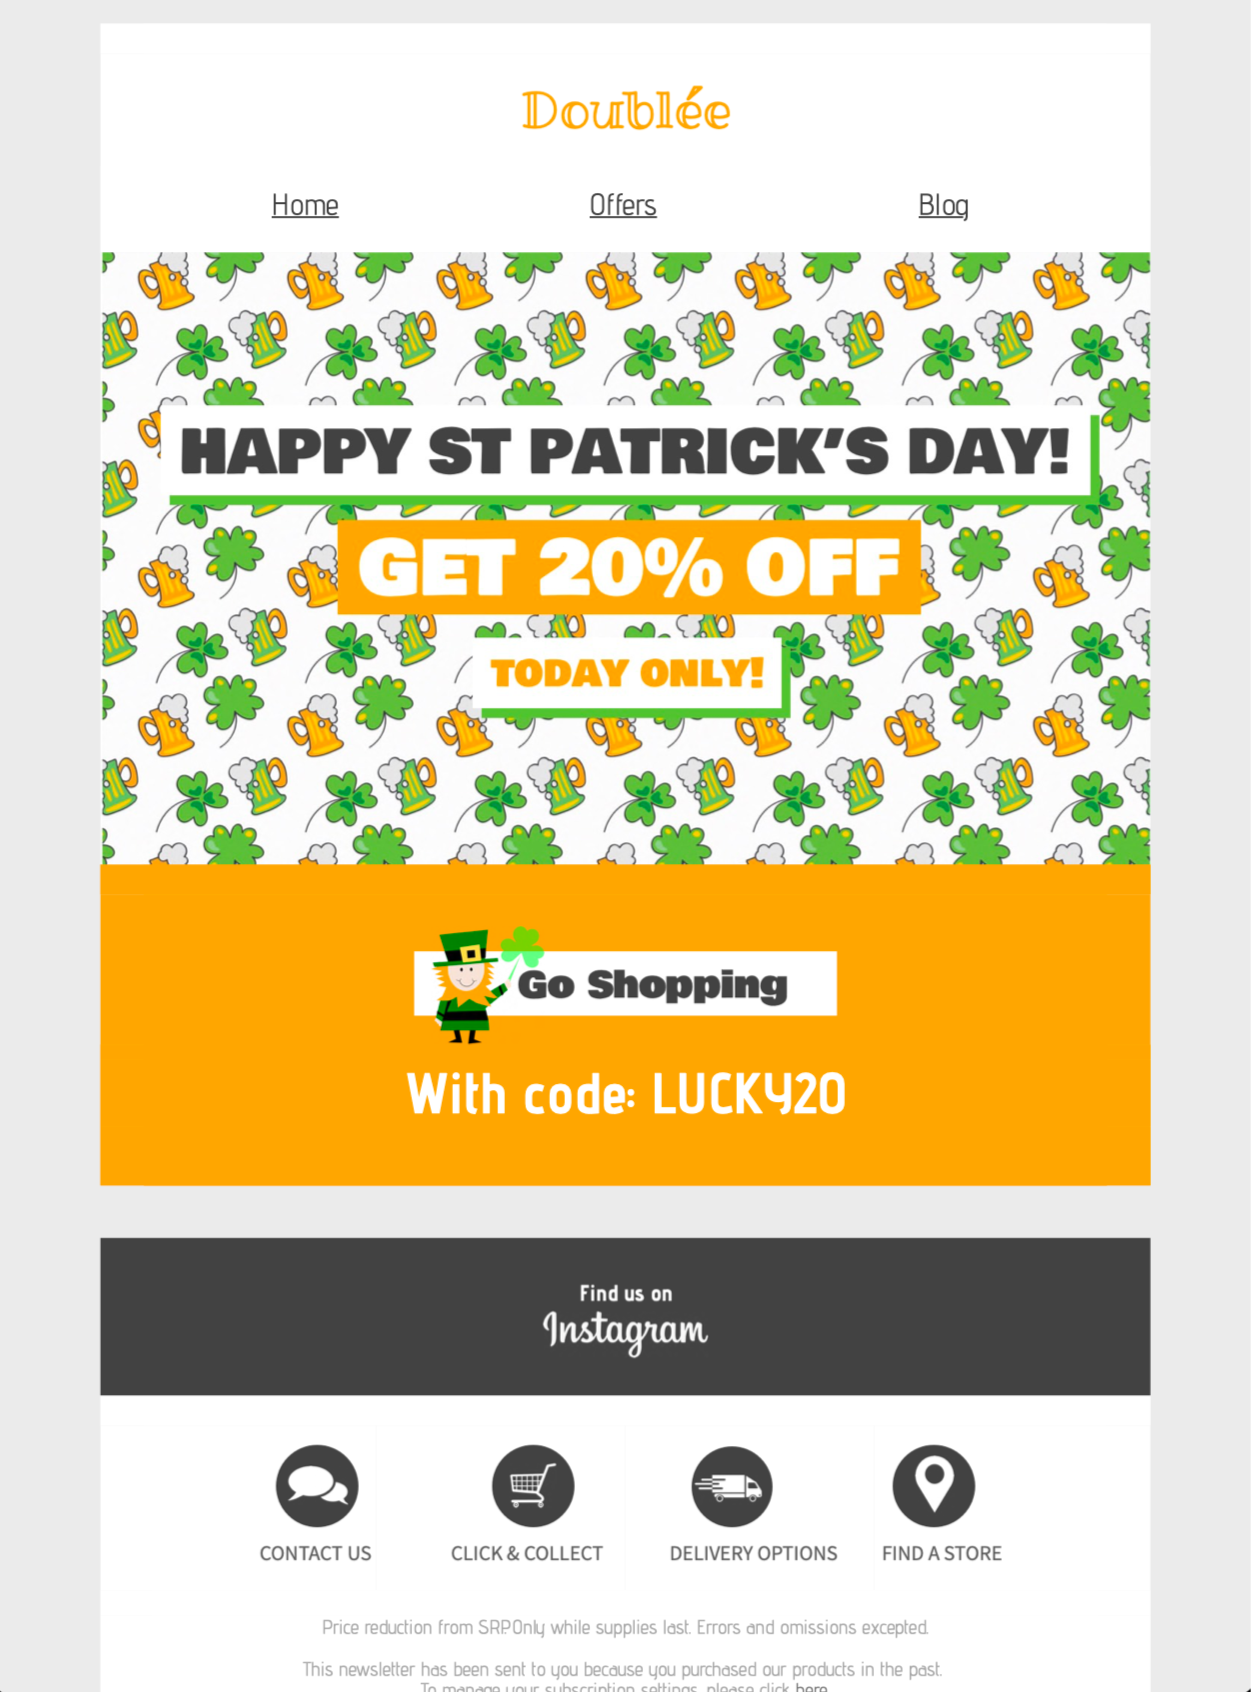 html email campaign for st Patrick's day